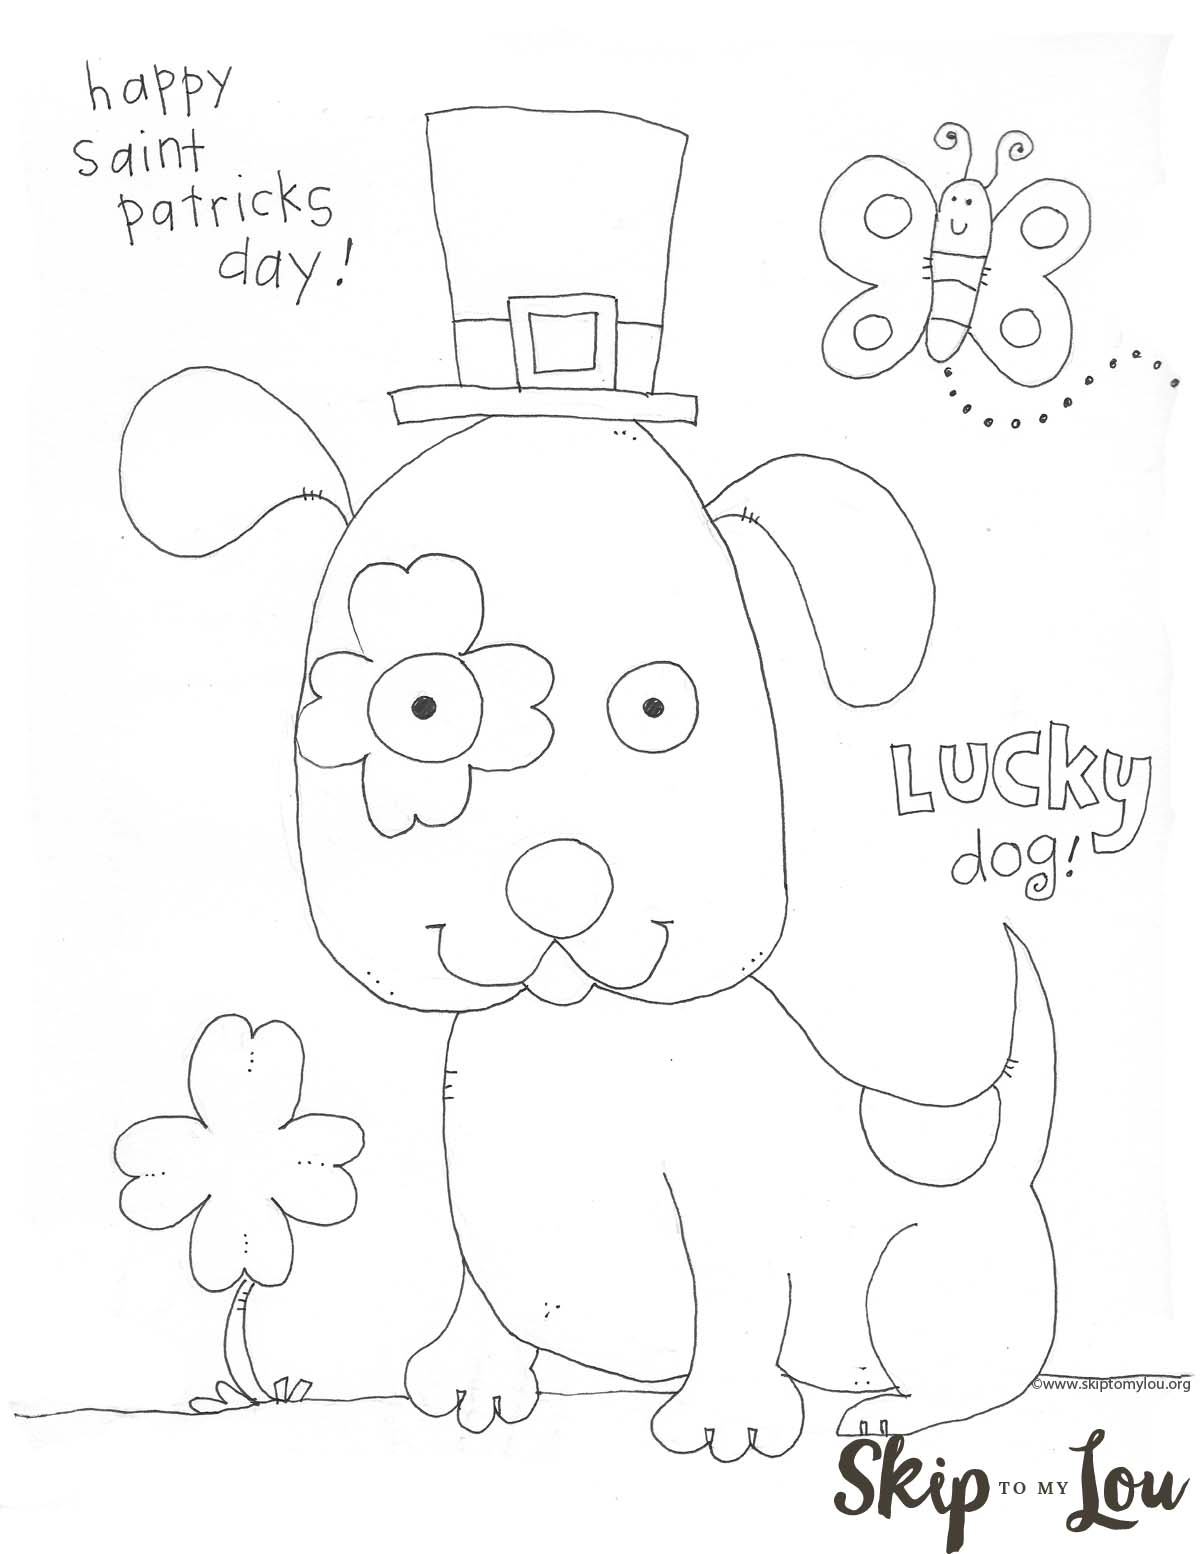 St Patricks Day Coloring Page preschool